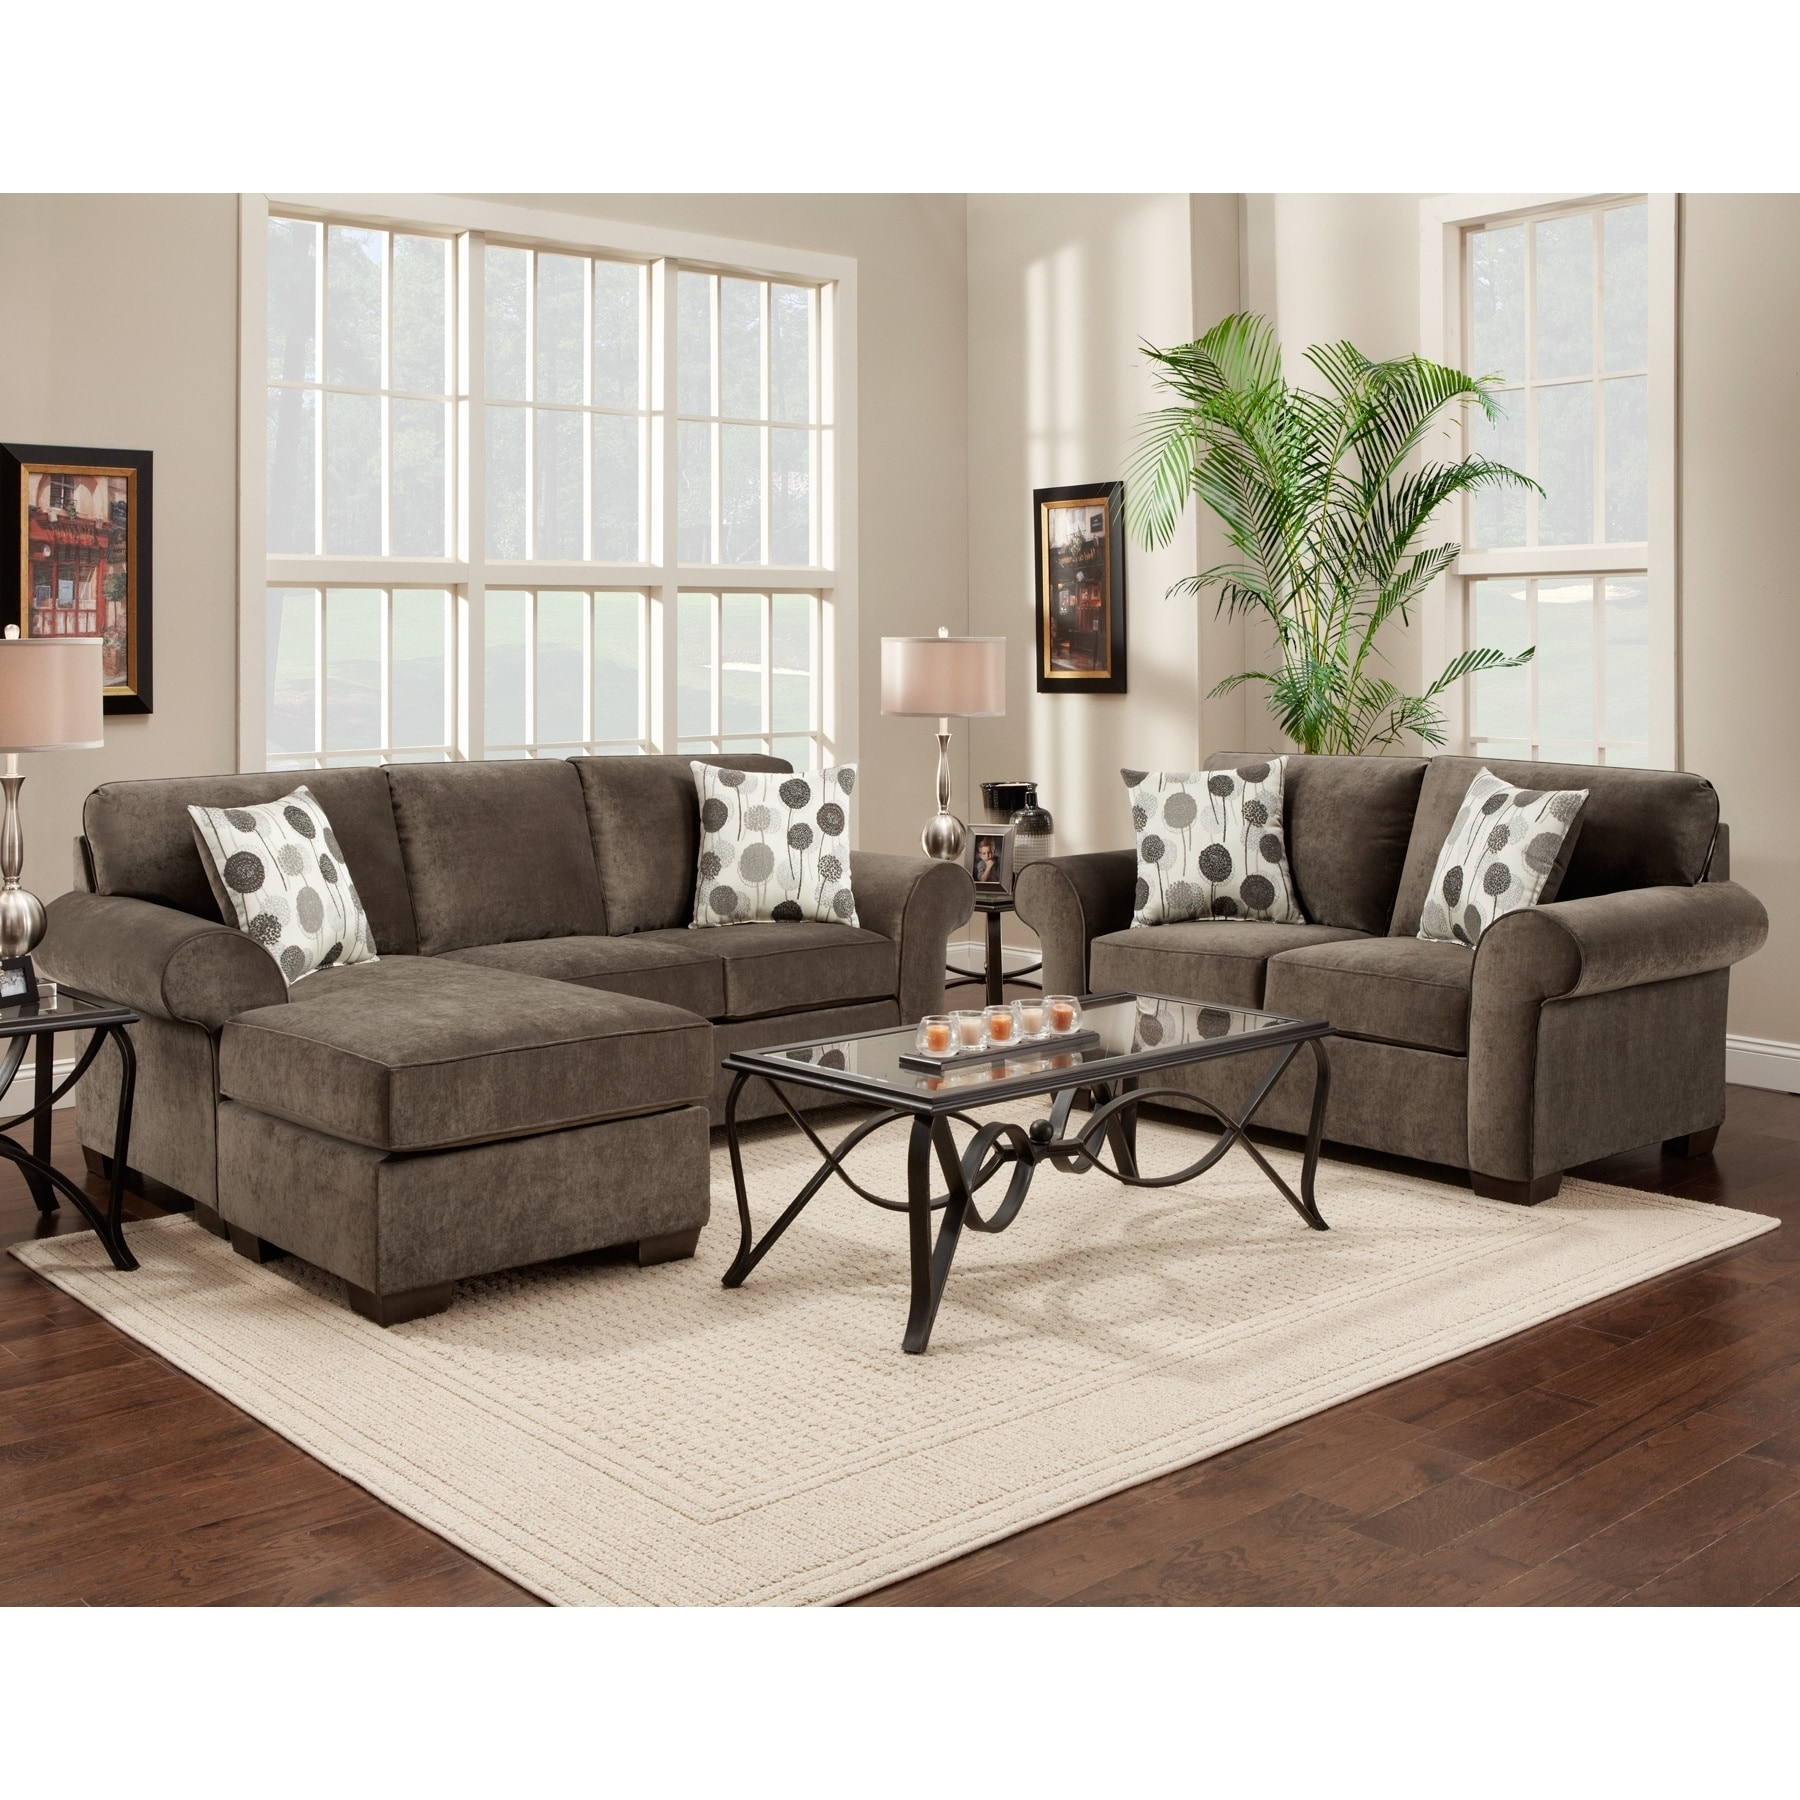 Most Recent Sectional Loveseat – Tidex With Regard To Turdur 2 Piece Sectionals With Laf Loveseat (View 19 of 20)